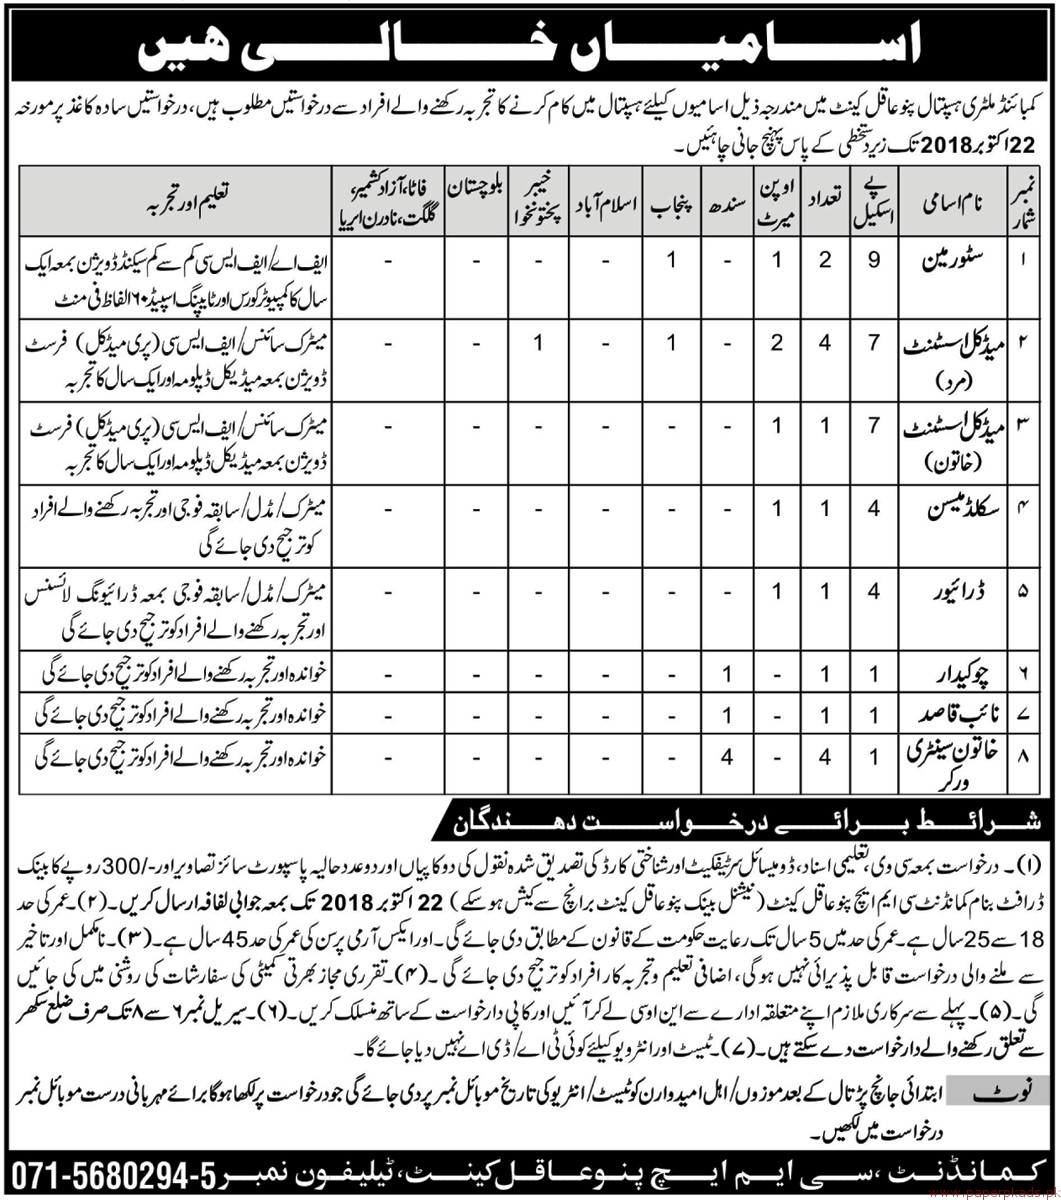 Commbined Military Hospital Jobs 2018 Latest